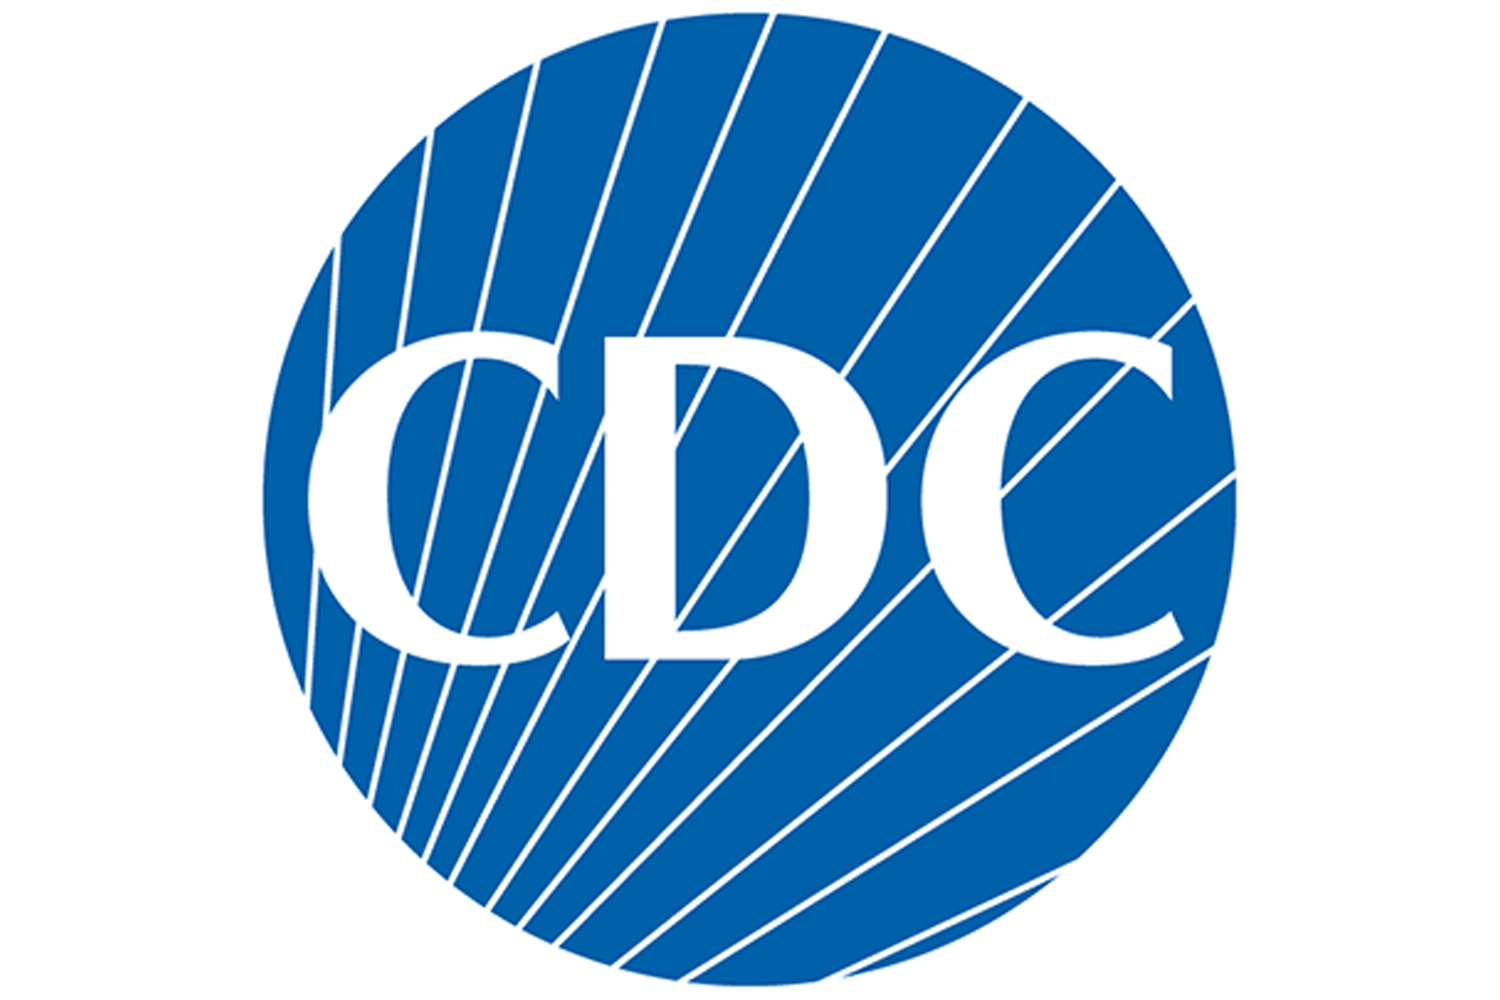 The logo for the Centers for Disease Control and Prevention (CDC).